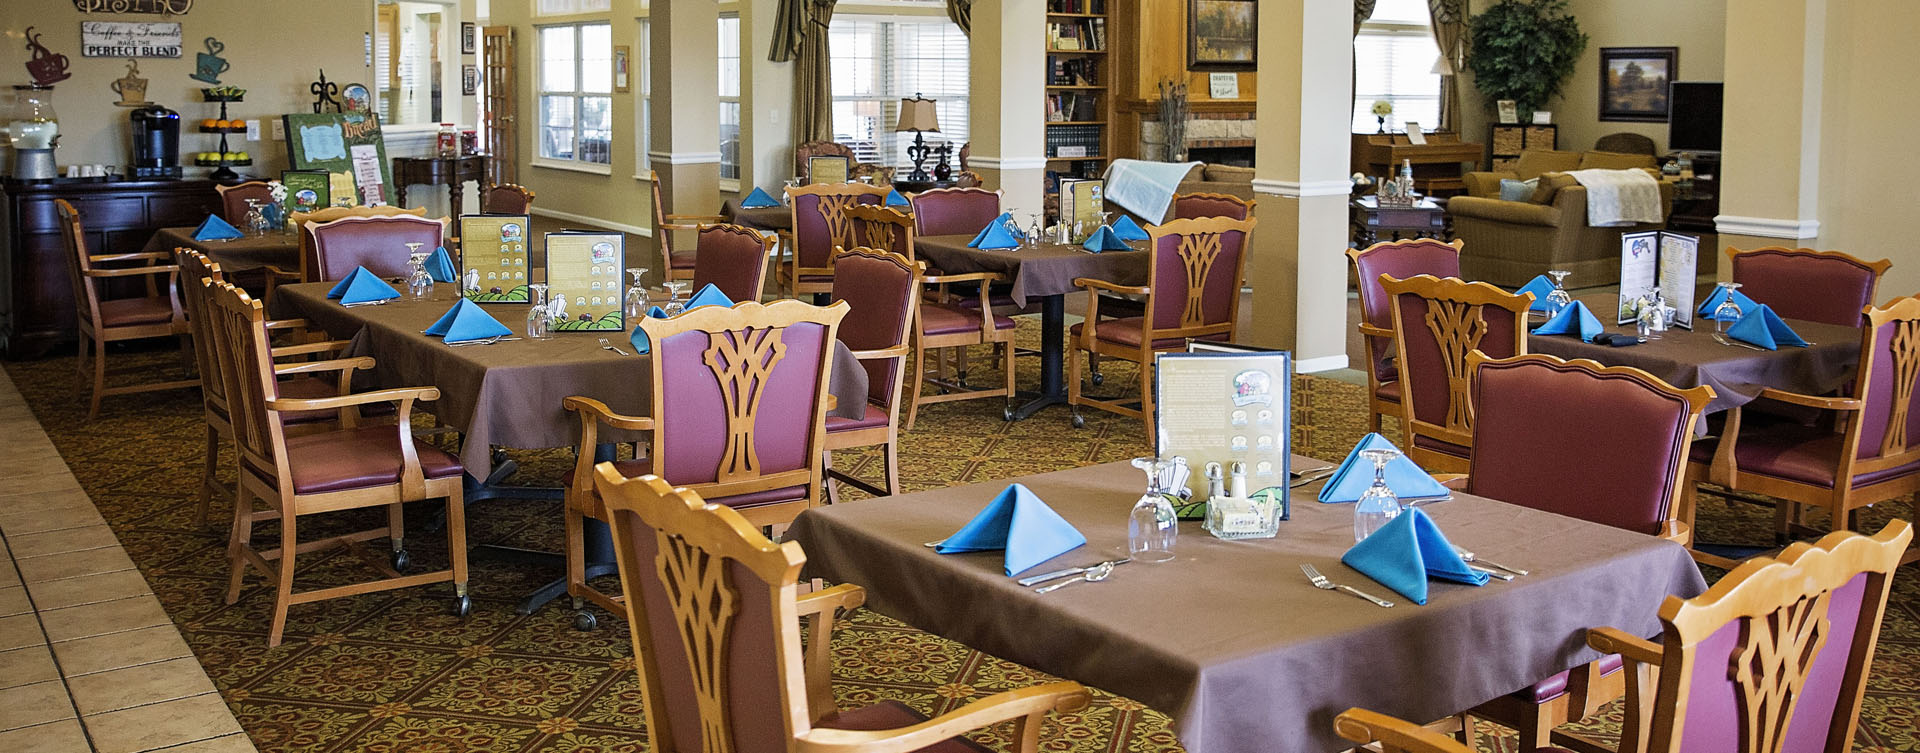 Food is best when shared with friends in the dining room at Bickford of Grand Island